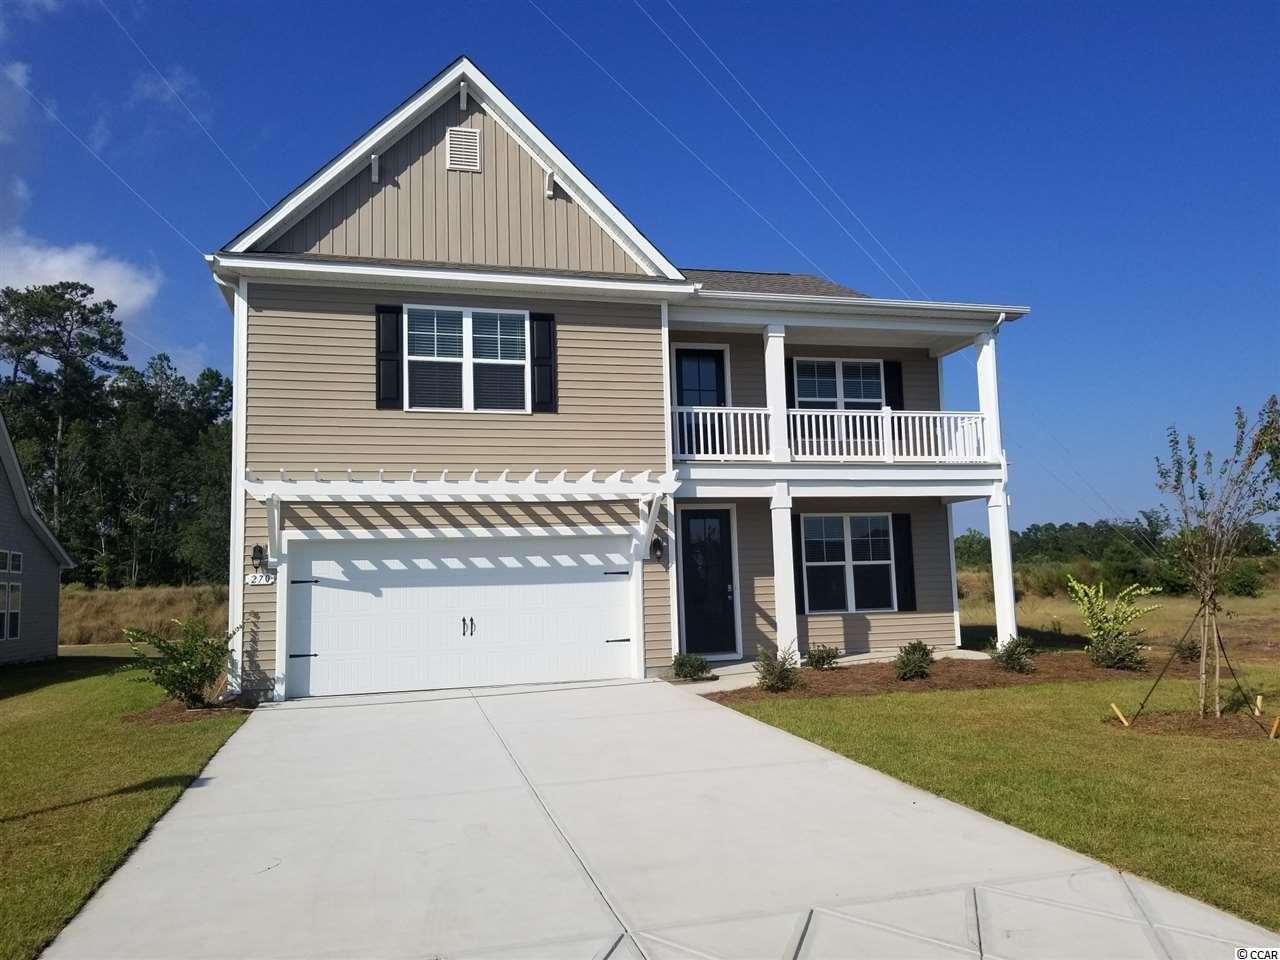 """Inlet Reserve is the place you want to call home! This is a natural gas community featuring 69 spacious homesites with private and pond views, conveniently tucked away in the heart of Murrells Inlet , yet just a short drive to championship golf courses, marinas, shopping, hospitals, beaches and the Marsh Walk where you'll find year round entertainment and award winning restaurants with spectacular views of the salt marsh and wild life.  If you are looking to downsize, upsize, or to add a pool and create your own outdoor living space, Inlet Reserve has the homesite and home for you.  We offer a mix of 1 story and 2 story thoughtfully designed open living floor plans, perfect for entertaining family and friends. The Tillman E is a Beautiful 2 story home featuring double front covered porches, 5 bedrooms, 3.5 bathrooms, crown molding, tray ceiling, 5 1/4"""" baseboard and trimmed out windows, 8ft. entry door and huge loft. This home offers a formal dining room that flows through to a spacious kitchen with 36"""" staggered height cabinets , granite countertops which includes a large gourmet island overlooking the family room, pantry, glass tile back splash, pendant lights and stainless steel appliances. 1st level features a an open floor plan with wood floors throughout the main living area. Off the living room 8ft. sliding doors lead to a rear screened covered porch with private view! Owners suite and bath offers a walk-in closet, 5 ft. walk-in tile, double vanities and bowls. Oak treads and painted risers take you to the 2nd level family room, 4 large bedrooms, 2 additional baths and laundry room. Tasteful interior touches run throughout the house to finish off this must see home. New Community in popular St. James school district. Pictures are of a previous built home and are for representation purposes only.  Call and schedule your appointment today!"""